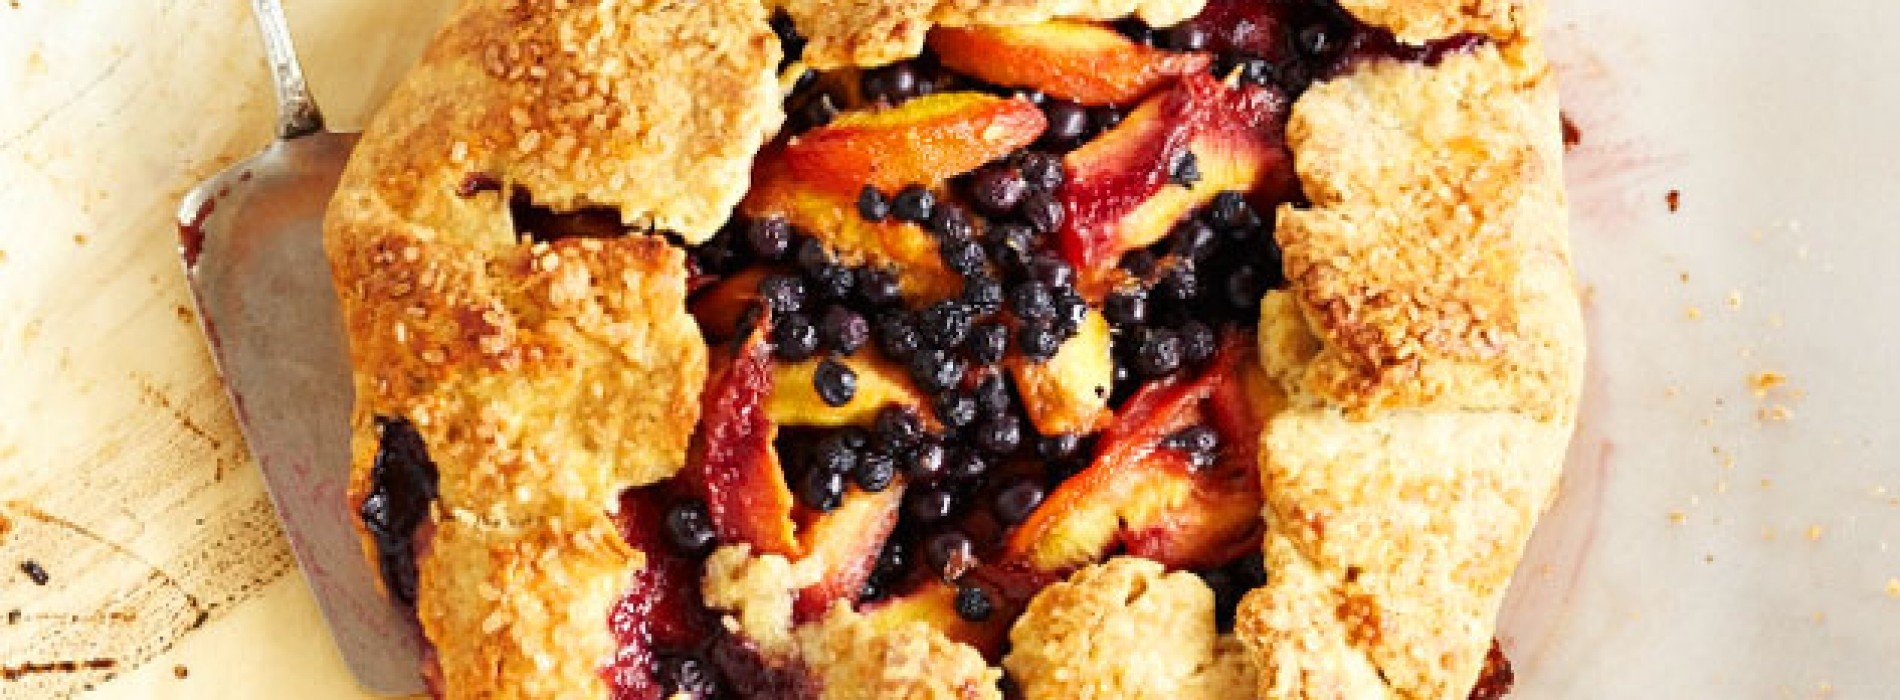 Peach & Blueberry Crostata